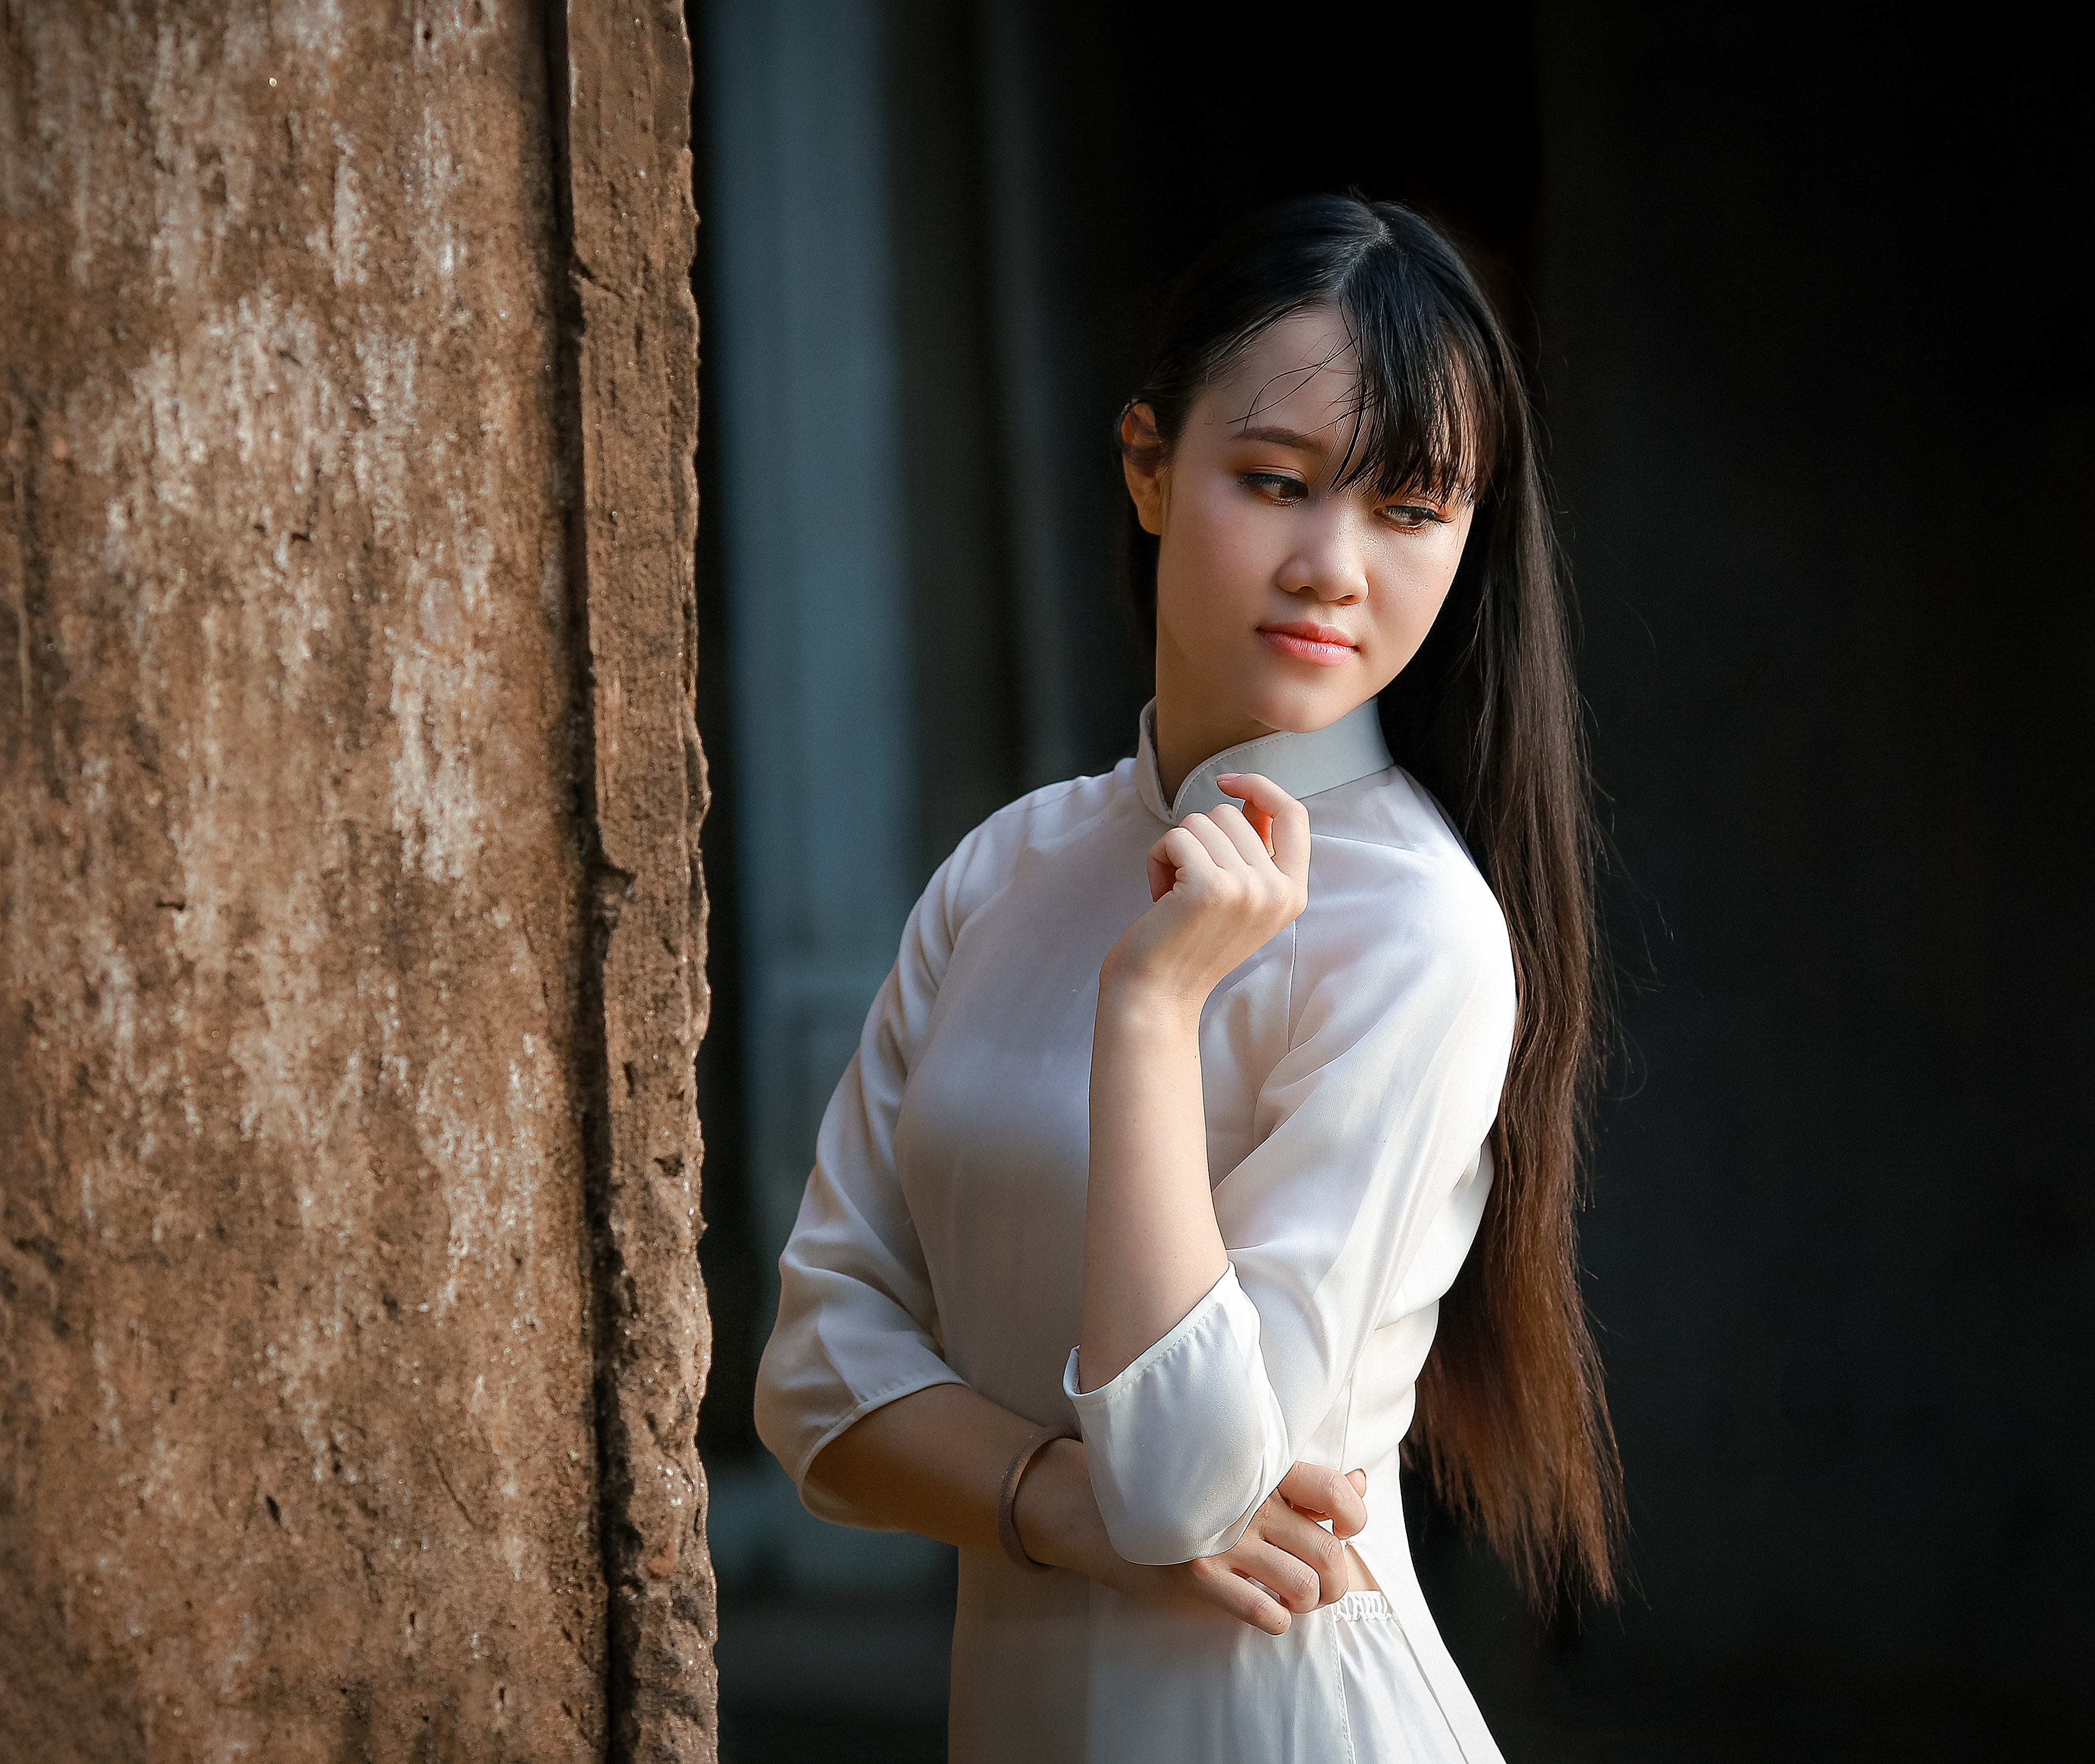 Women in White Long-sleeved Dress, Looking, Young, Woman, Style, HQ Photo